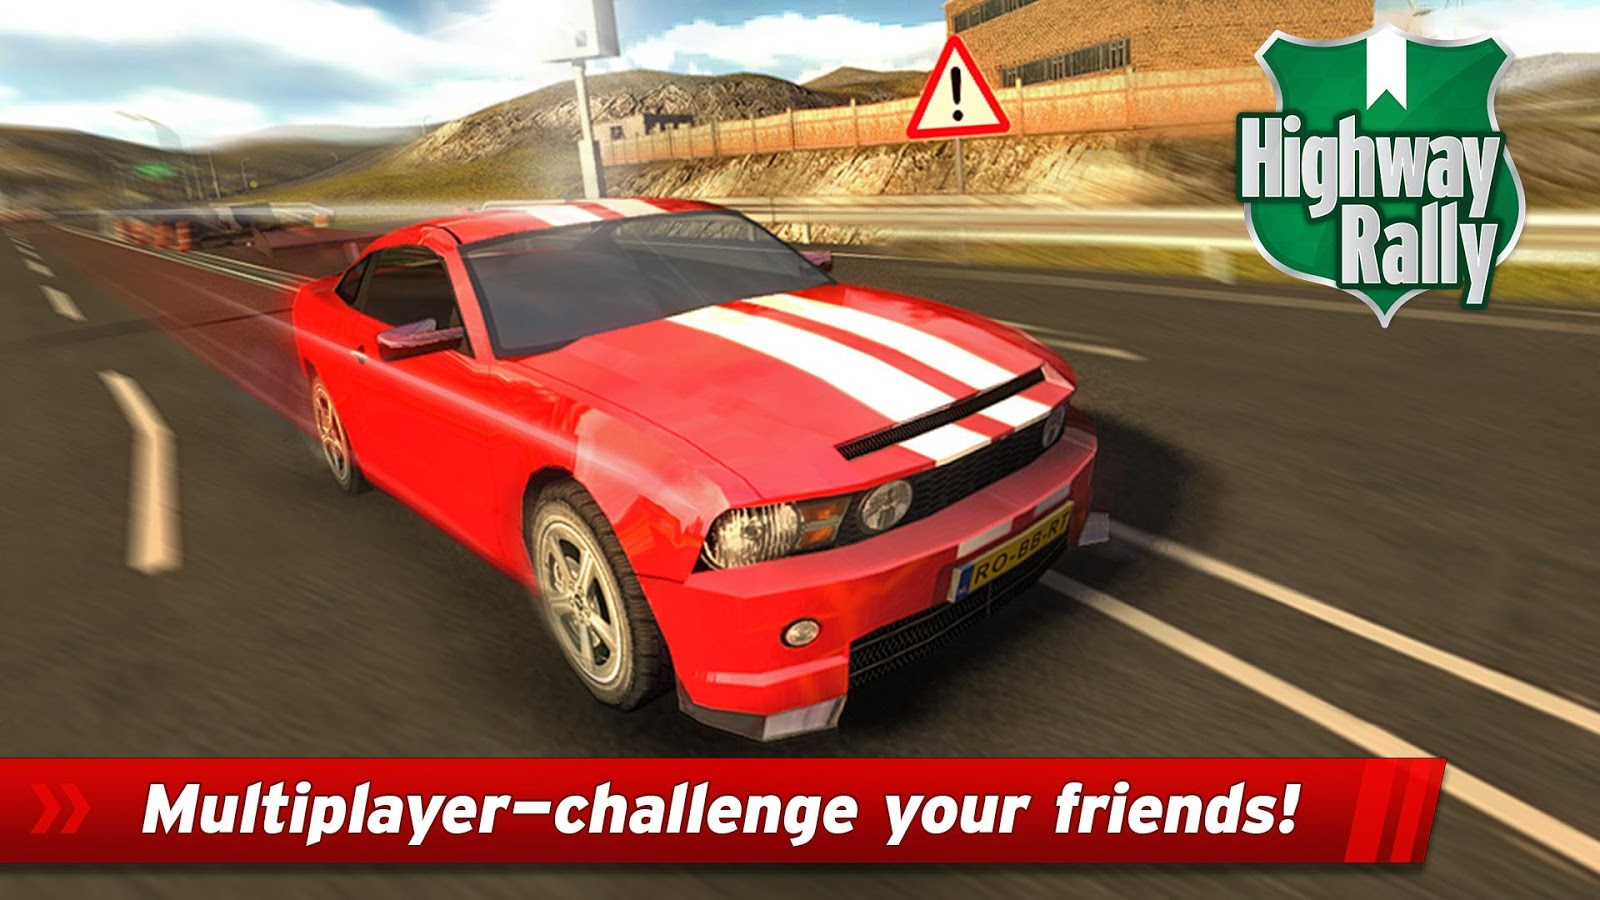 Highway Rally: Fast Car Racing v1.080 .apk File